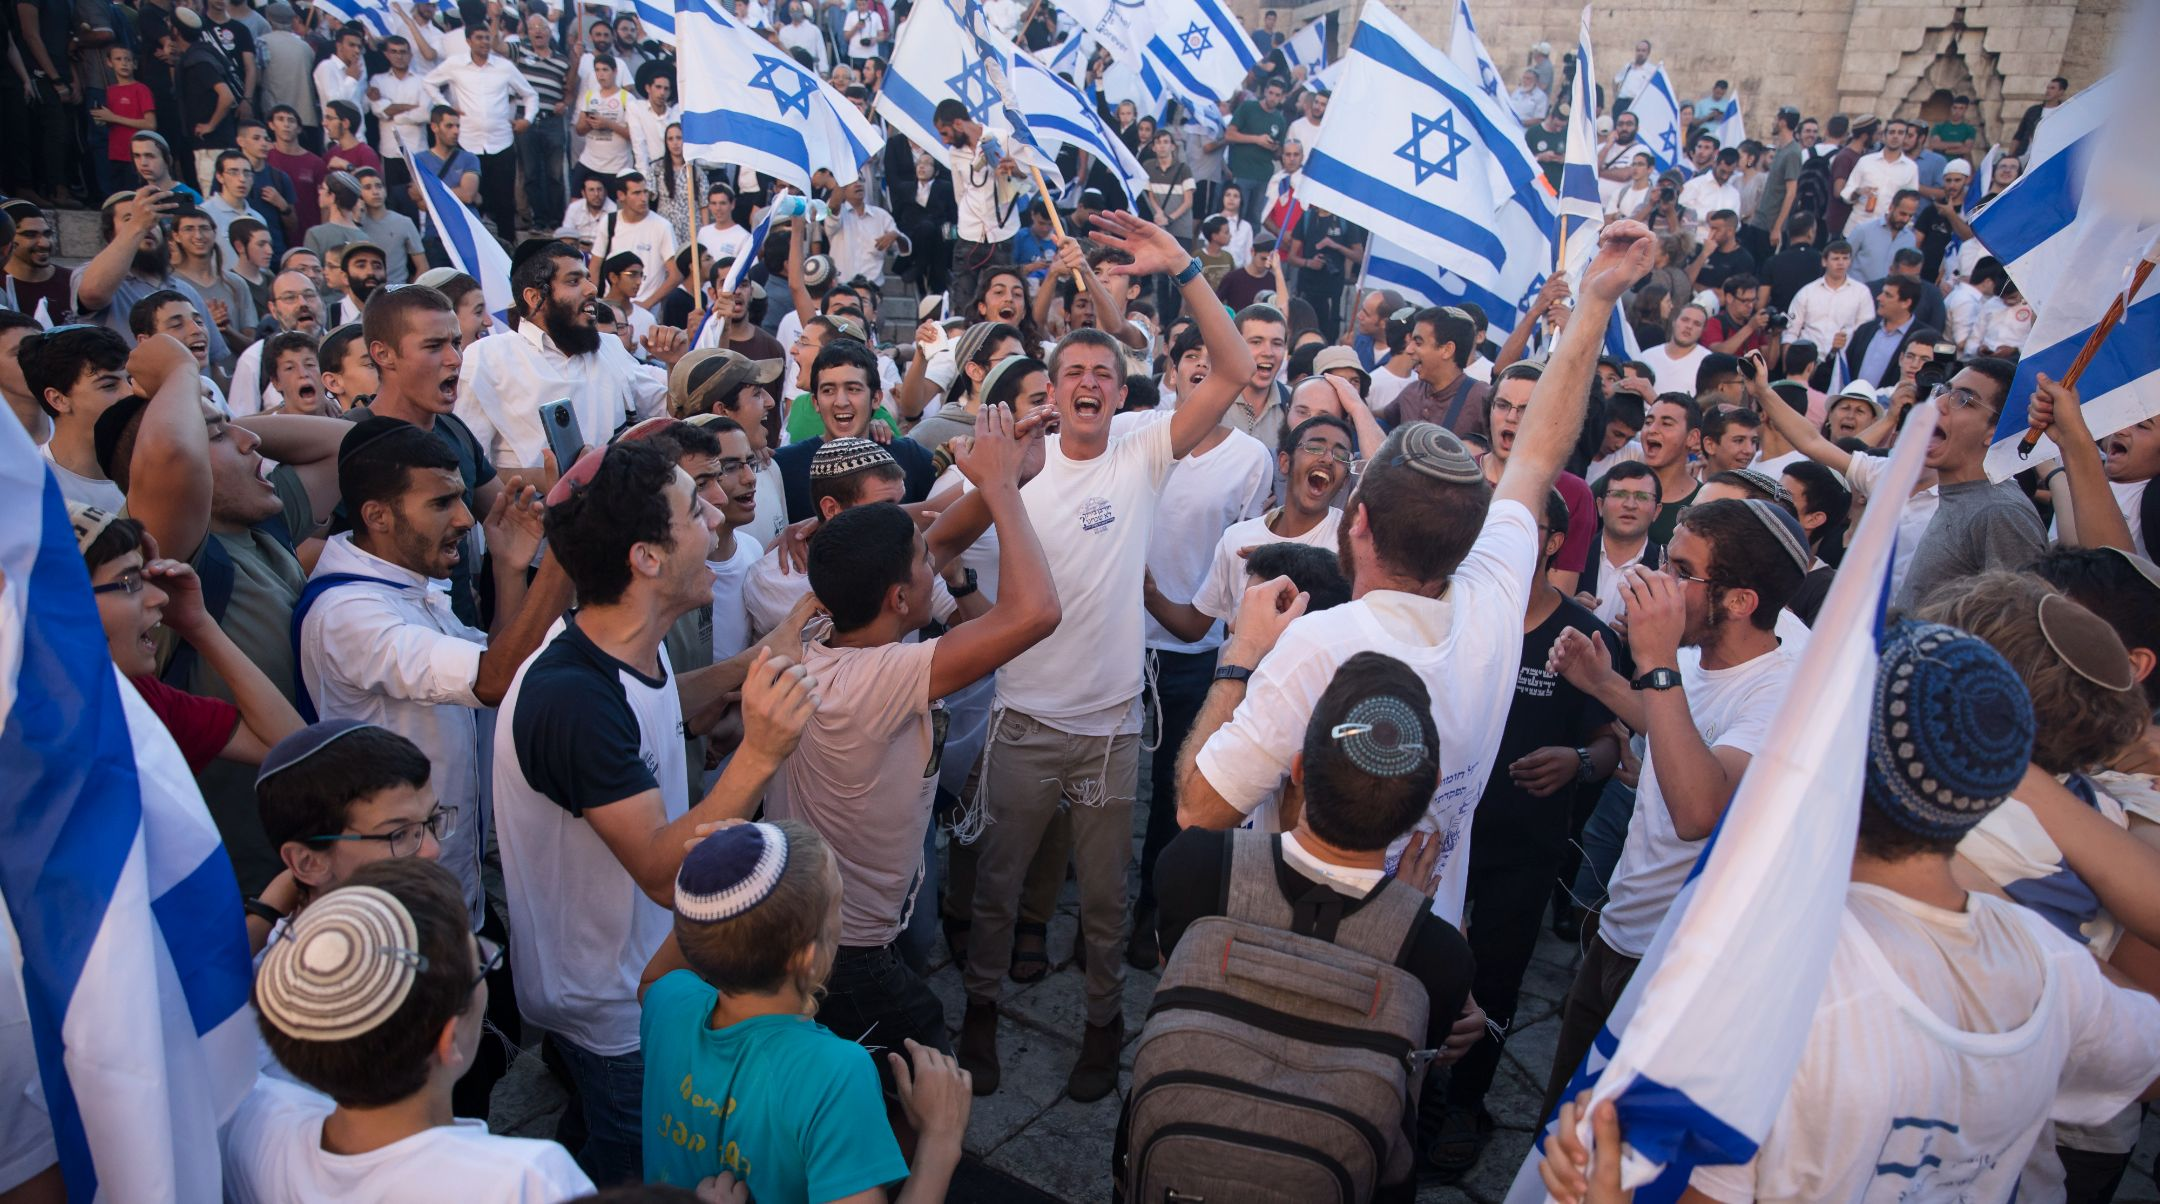 At a Jerusalem march featuring chants of 'Death to Arabs,' Israeli police arrest 17 Palestinian...